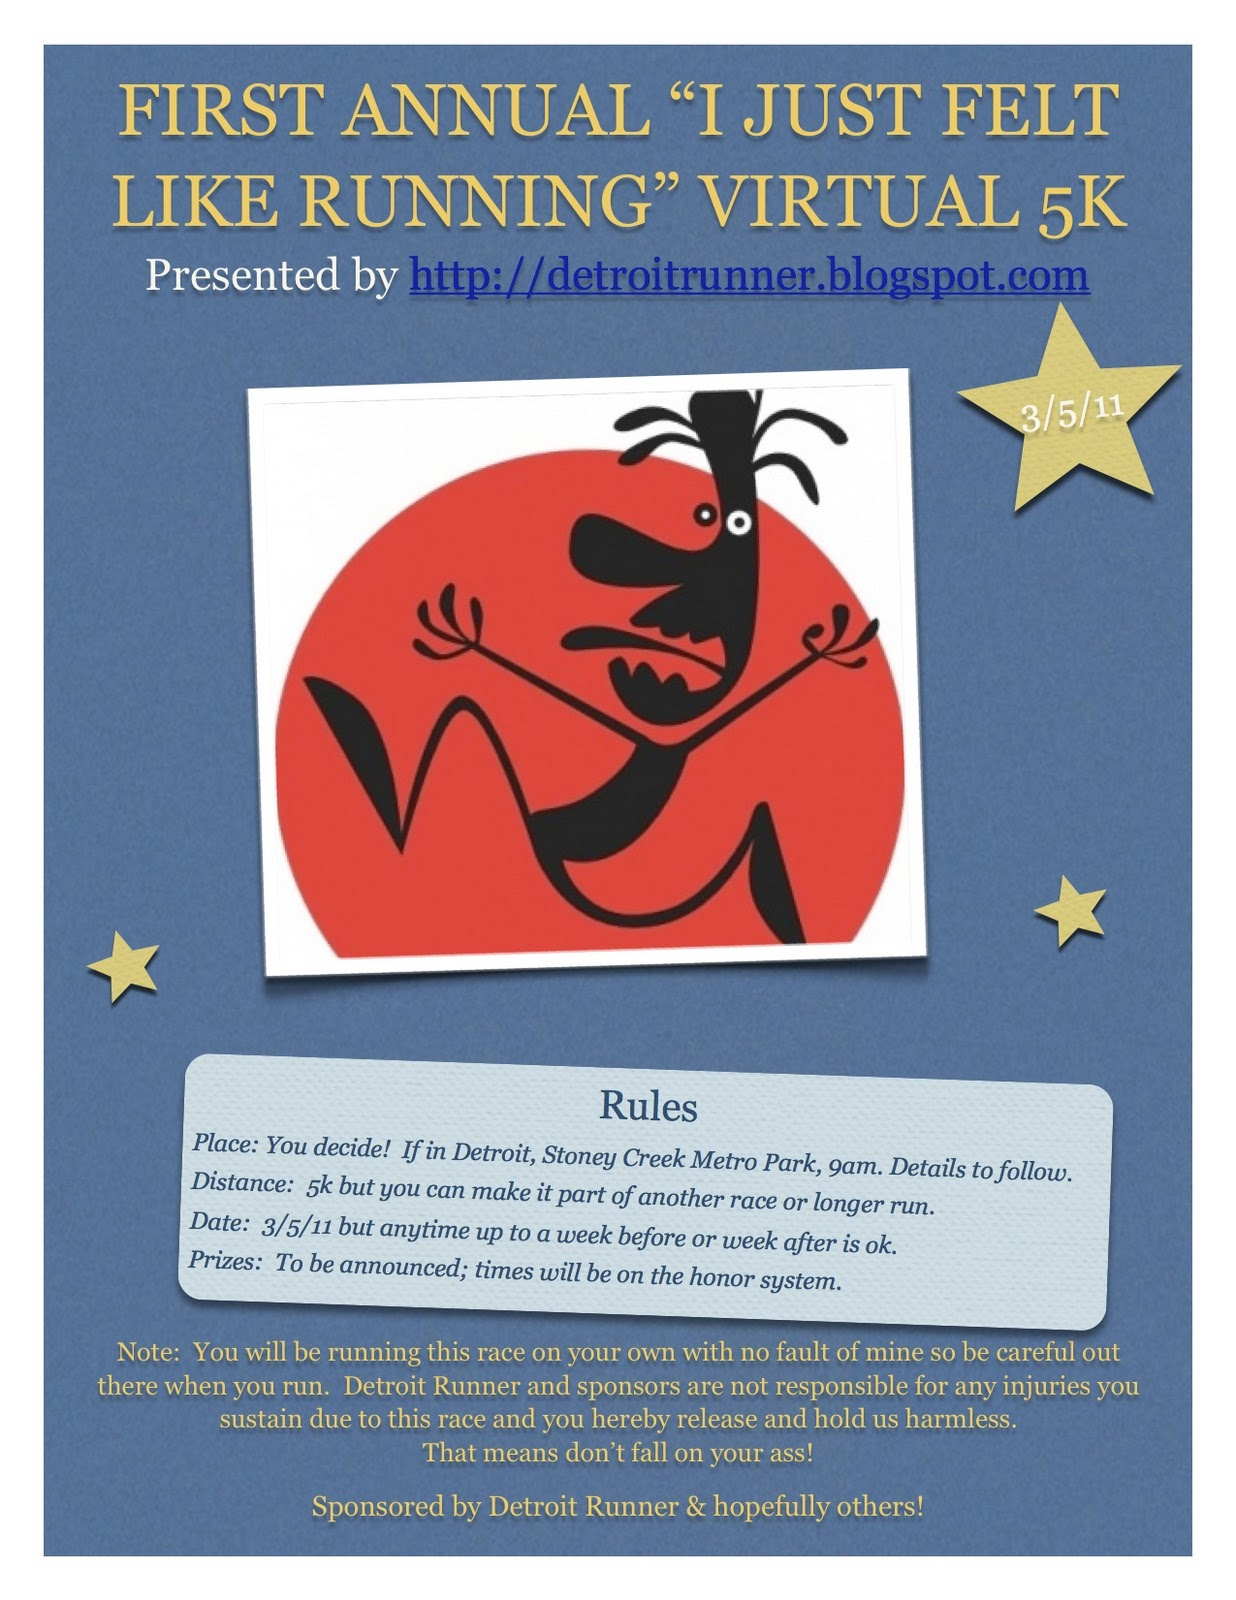 Click here for the virtual 5k at Detroit Runner